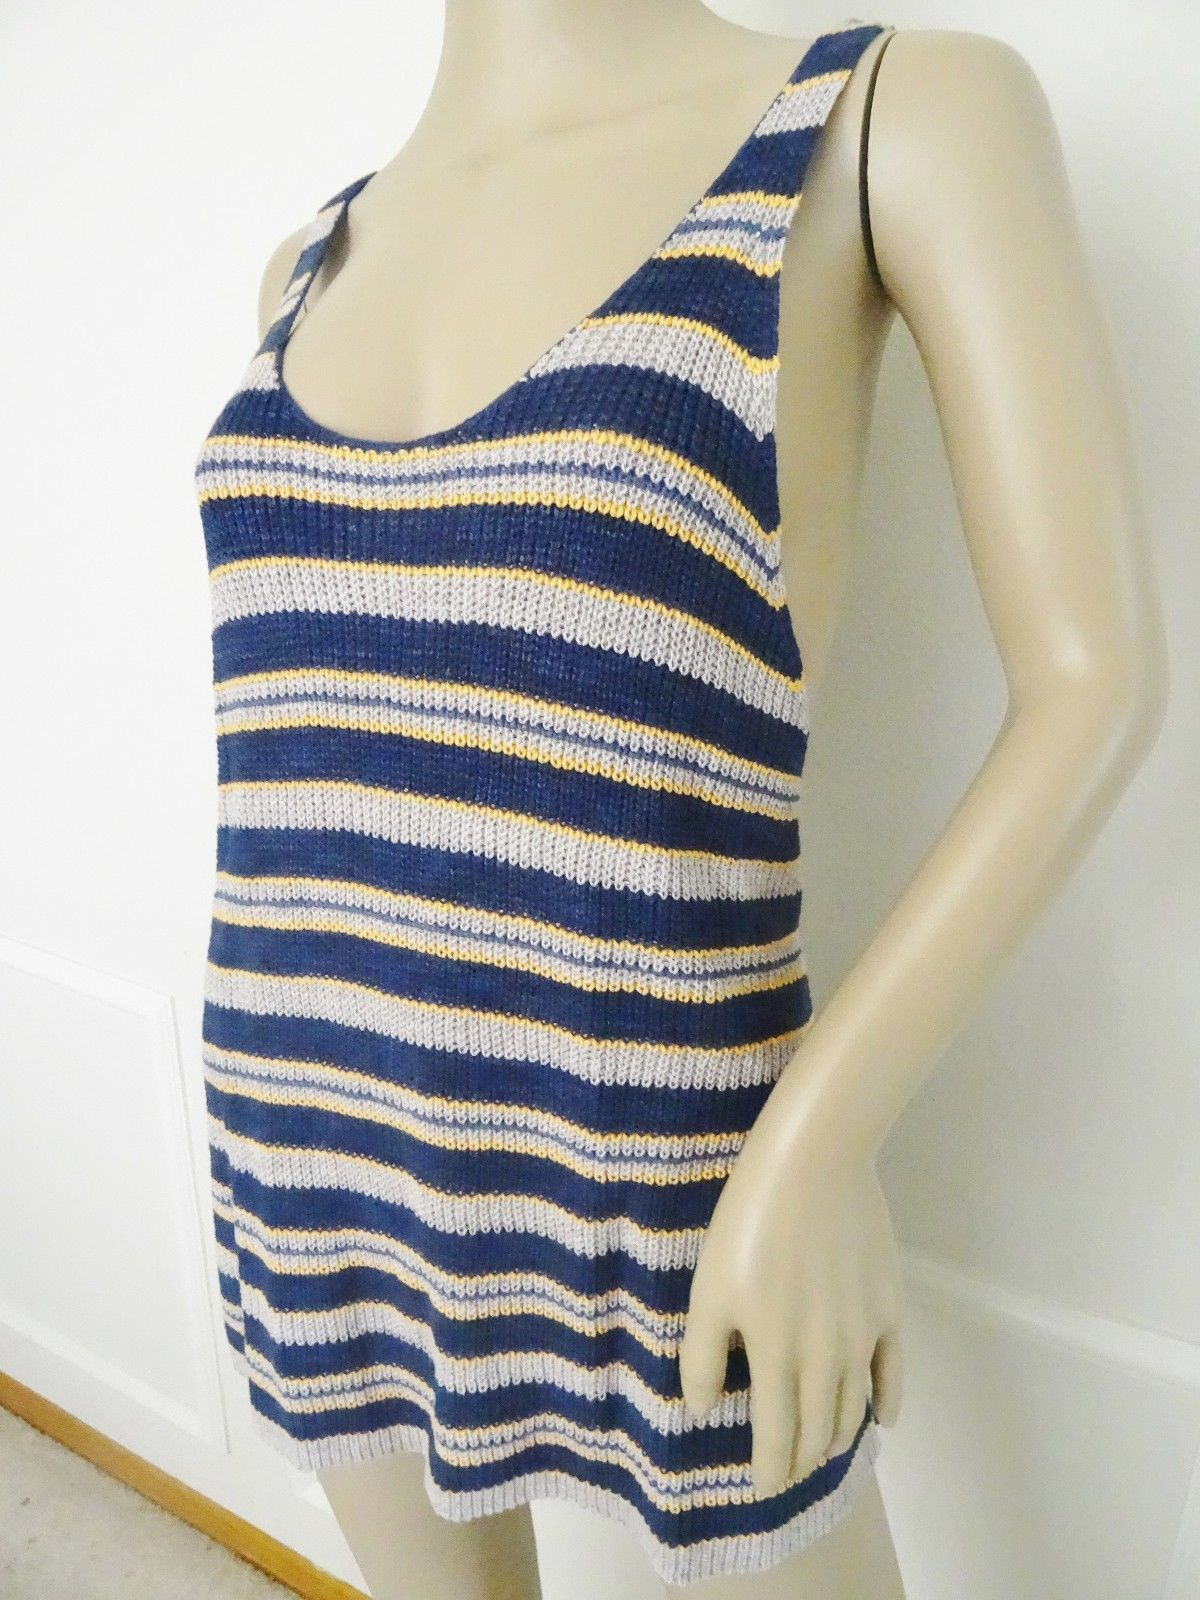 Nwt Free People Sweater Knit Stripe Sailor Tank Top Shirt L Large Navy Gray $98